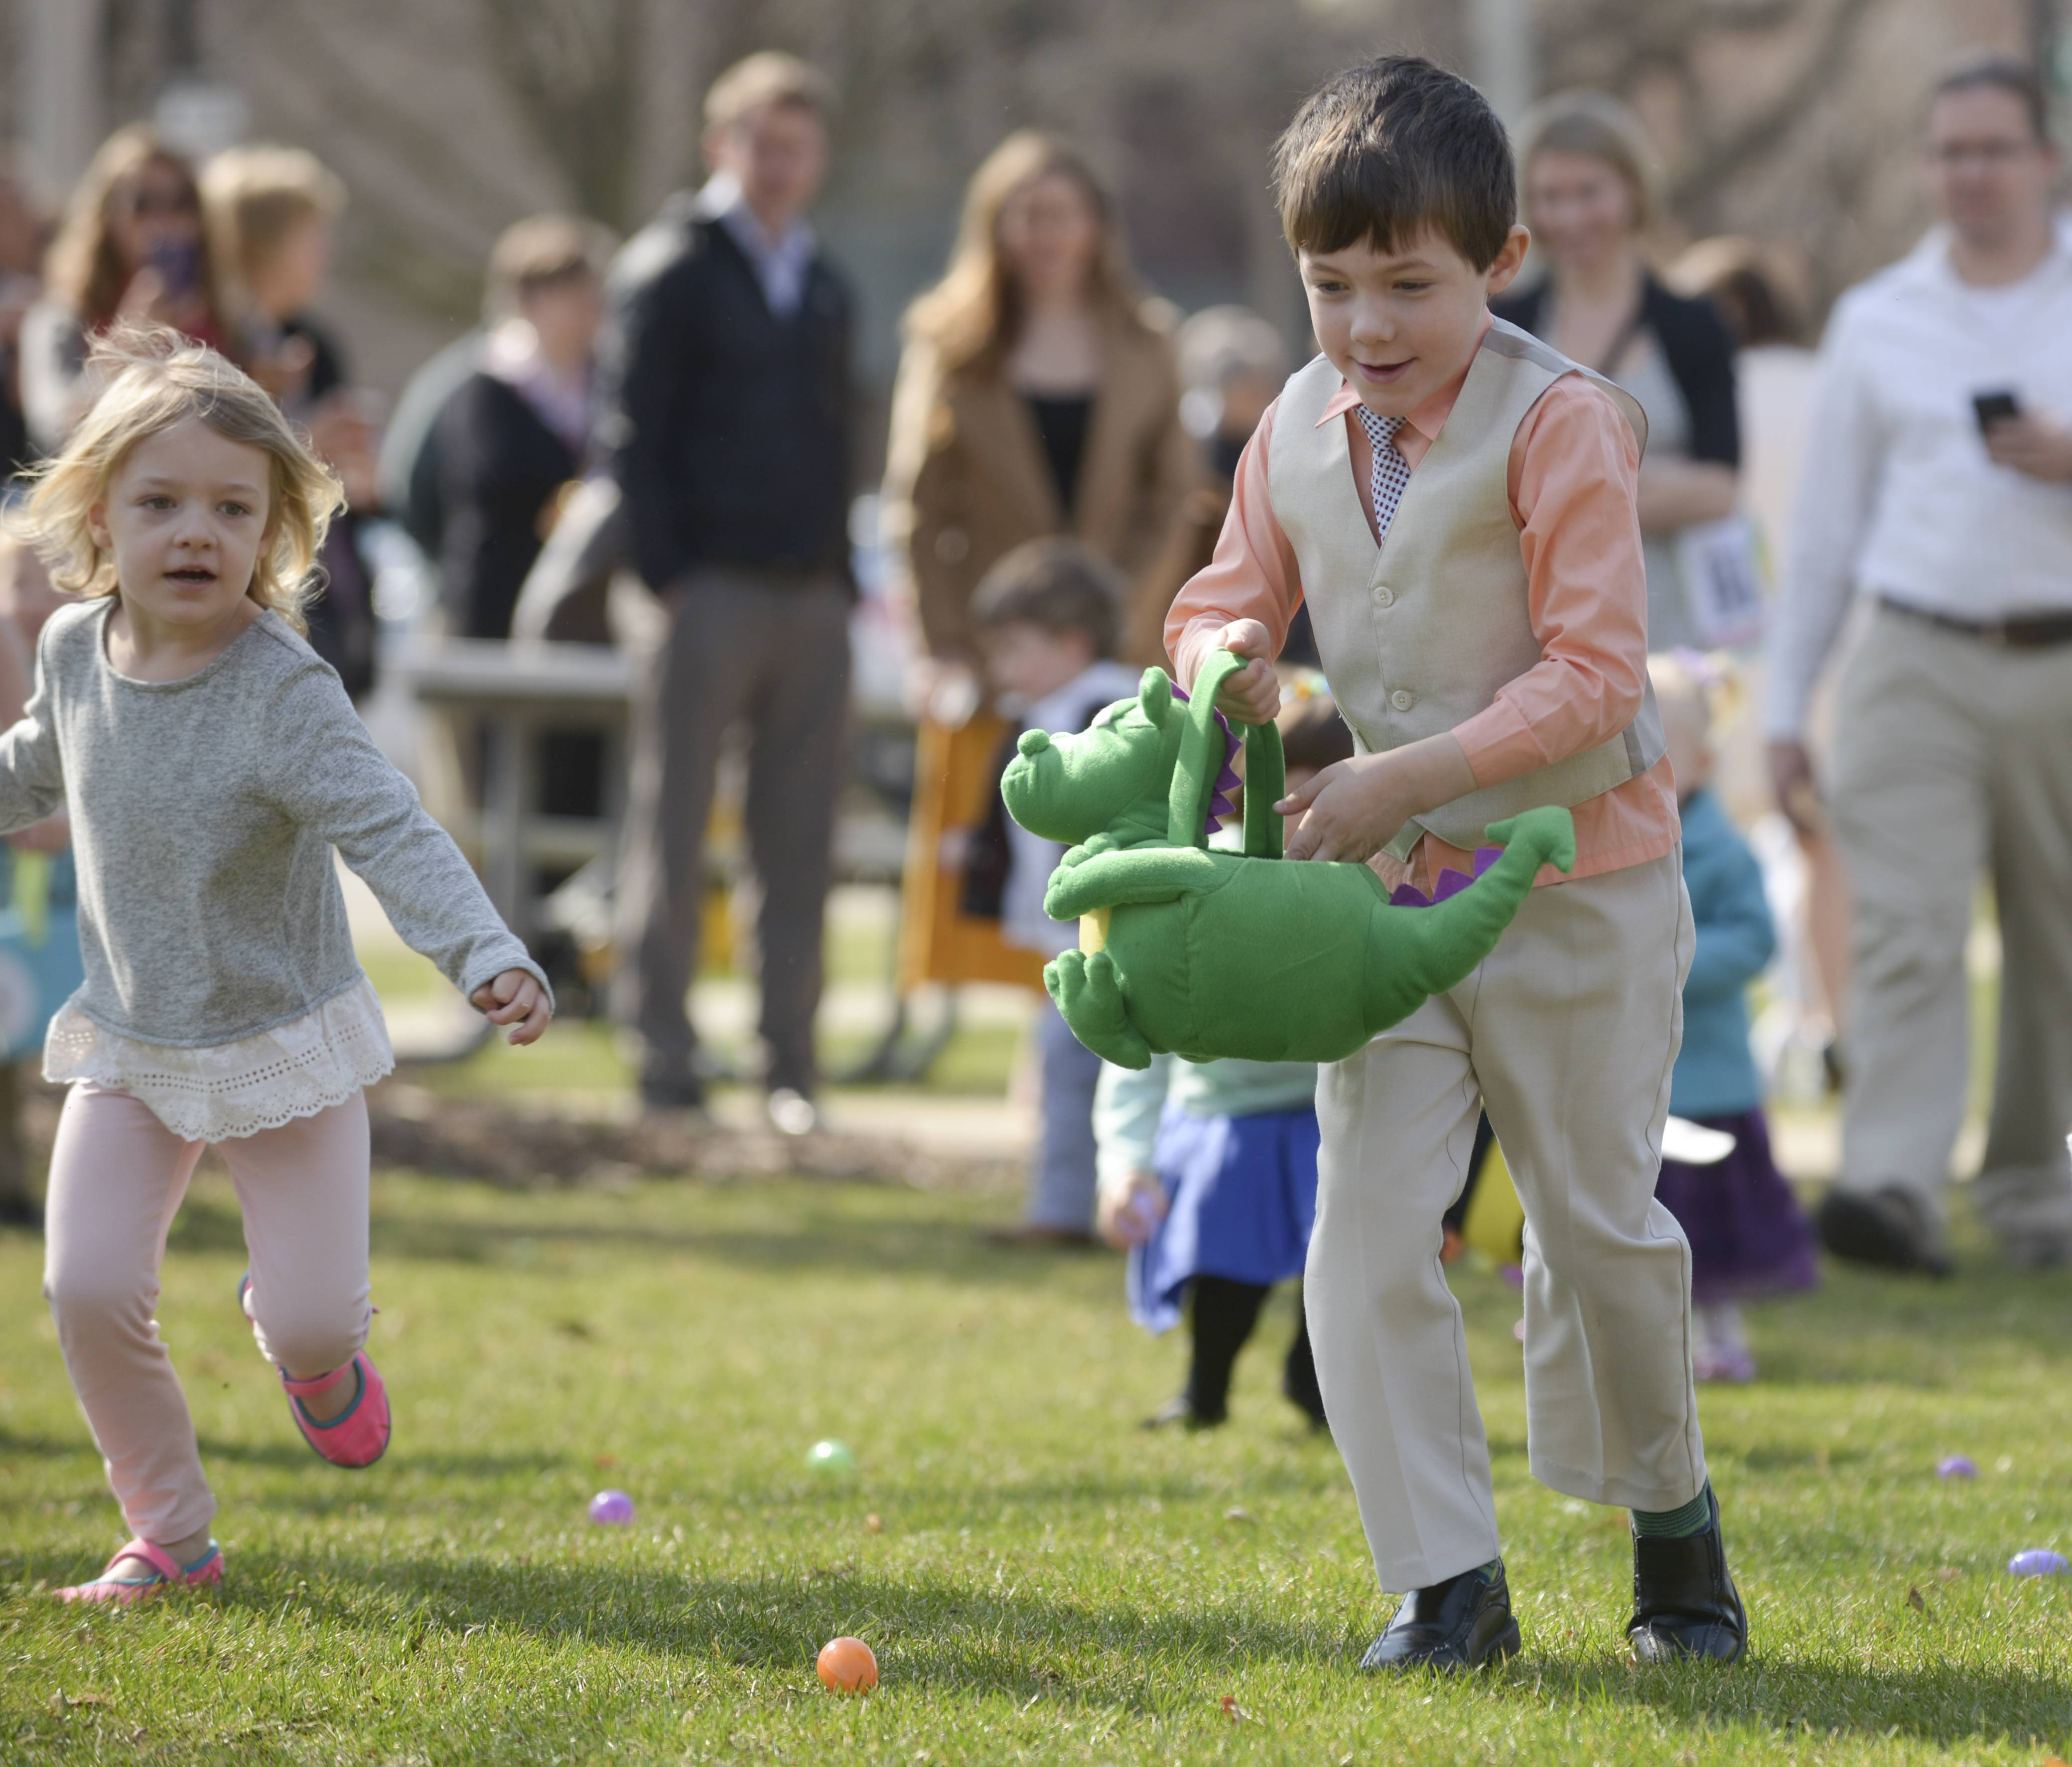 Ian Ruhter, 6, right of Wheaton gathers up the Easter eggs during the annual Gary United Methodist Church's Easter egg hunt at Memorial Park in Wheaton Sunday morning.